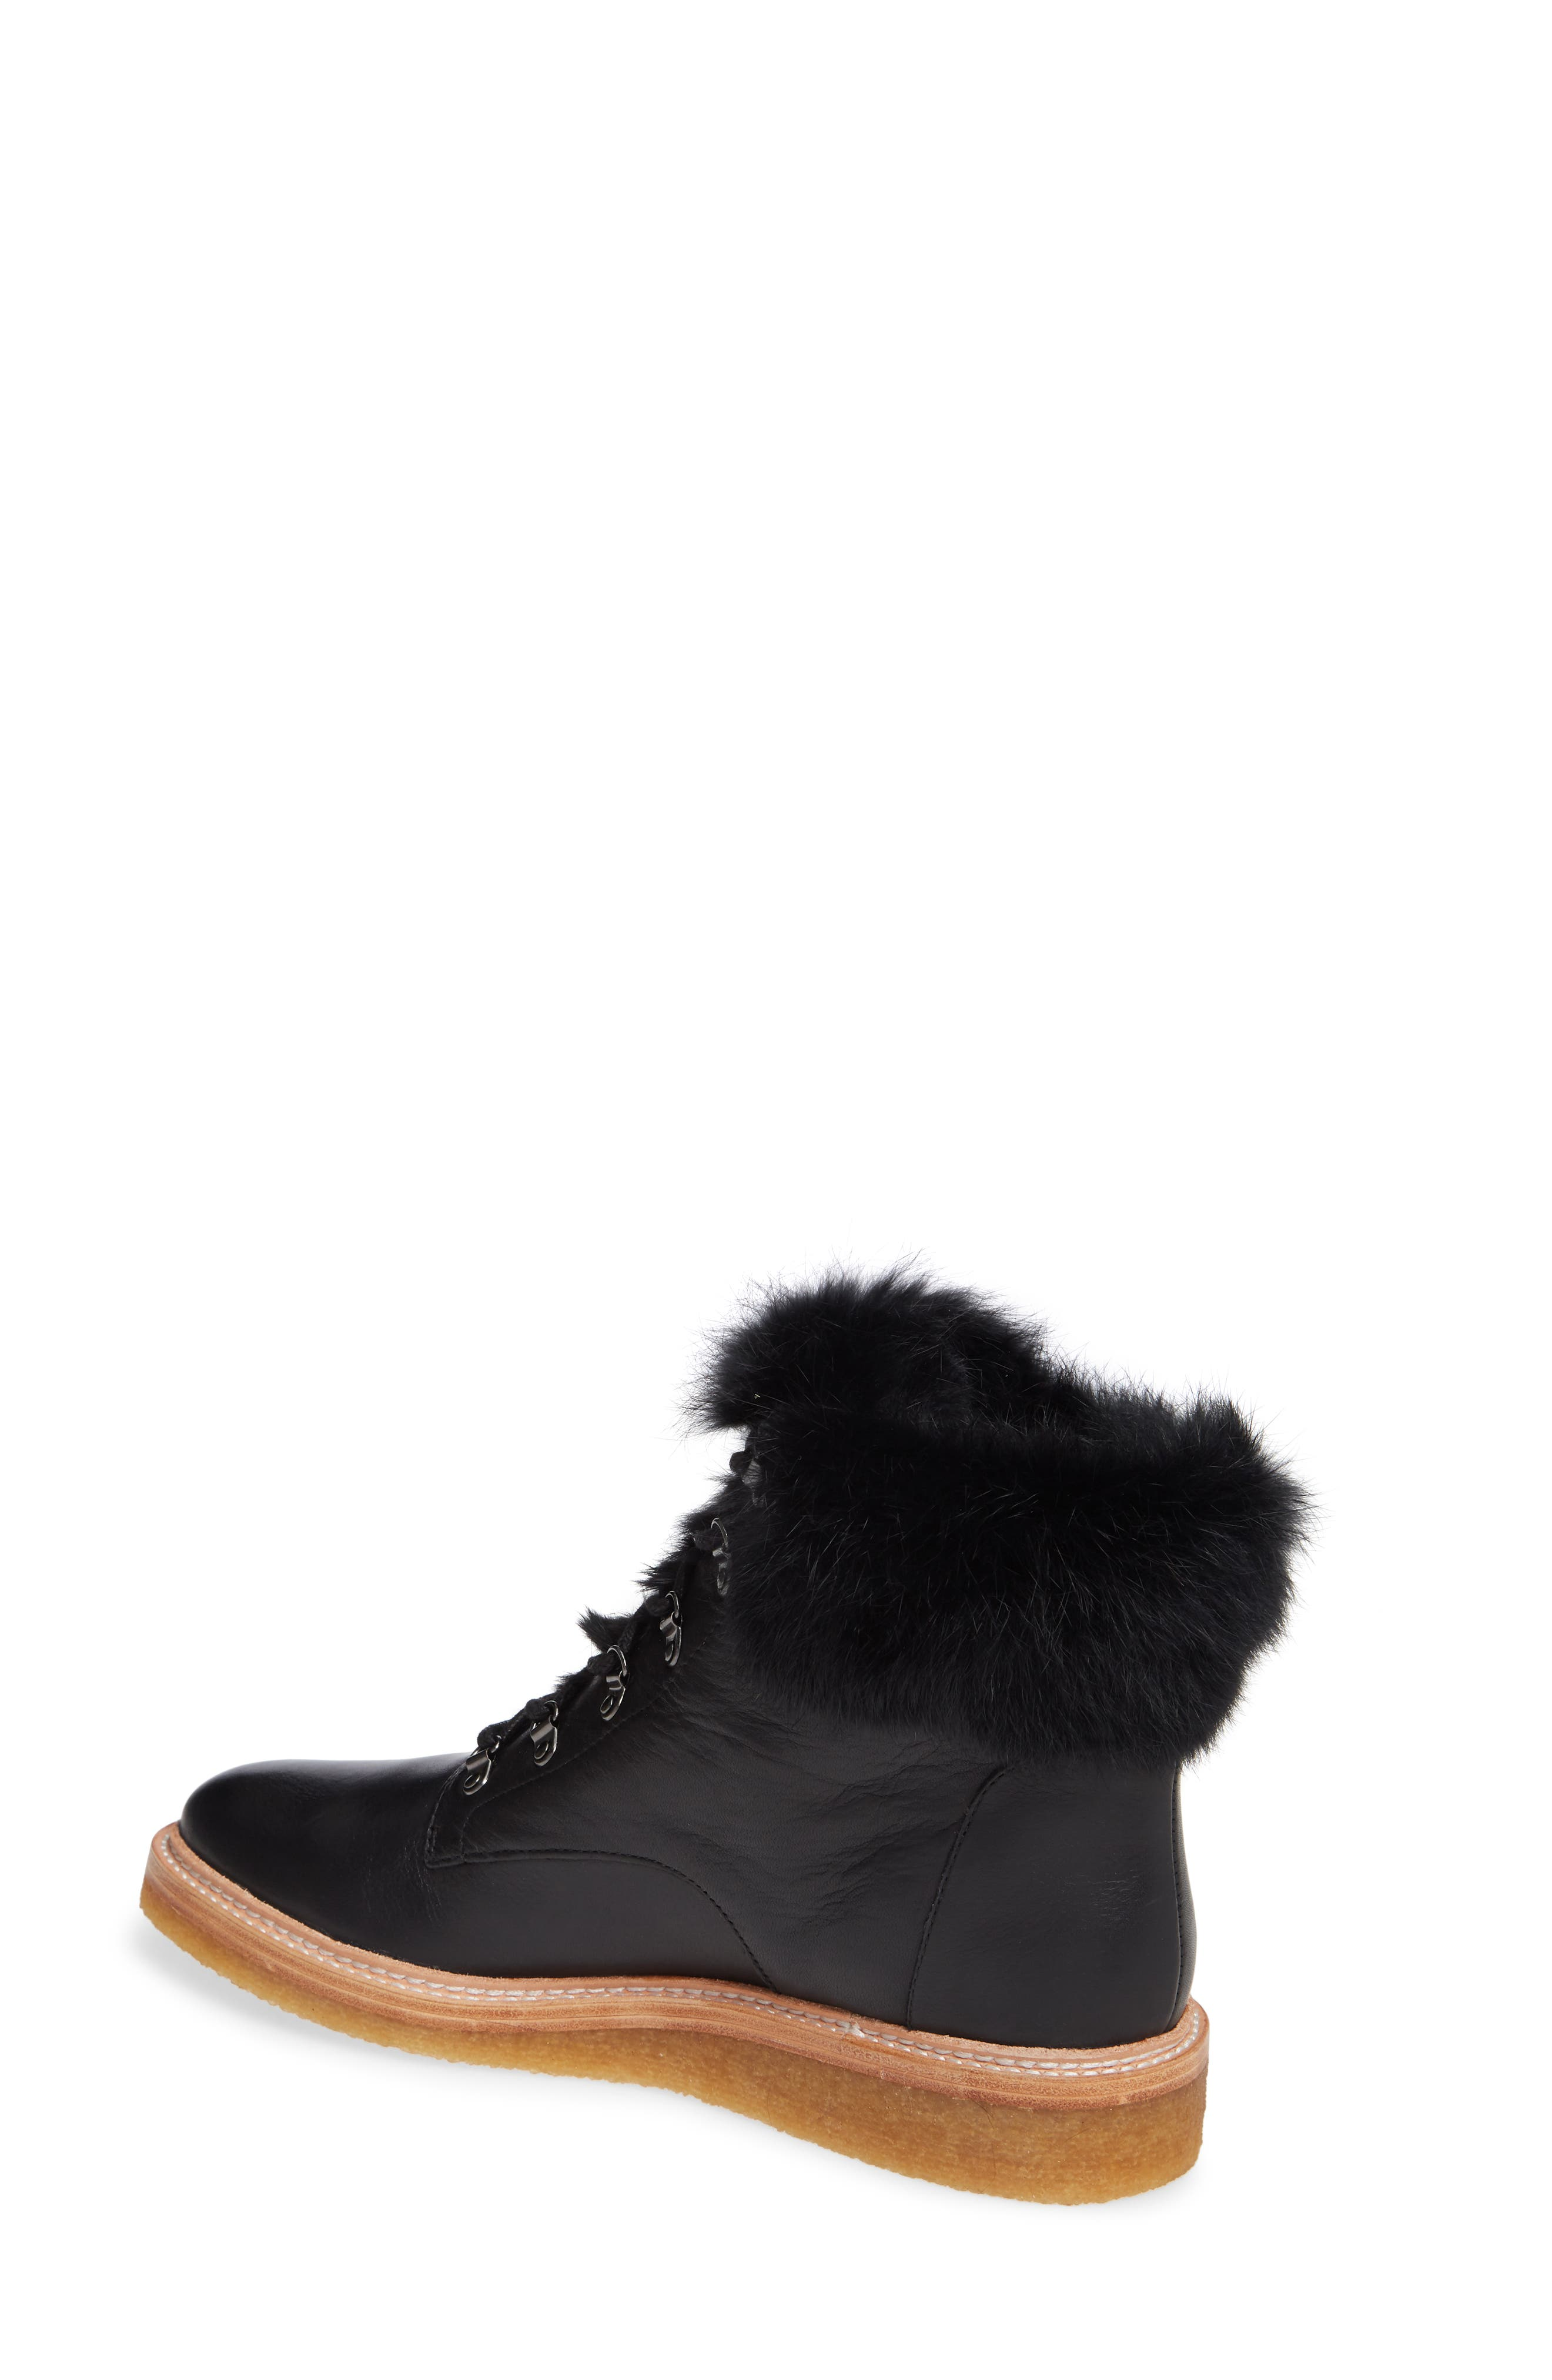 Winter Genuine Rabbit Fur Trim Boot,                             Alternate thumbnail 2, color,                             BLACK LEATHER